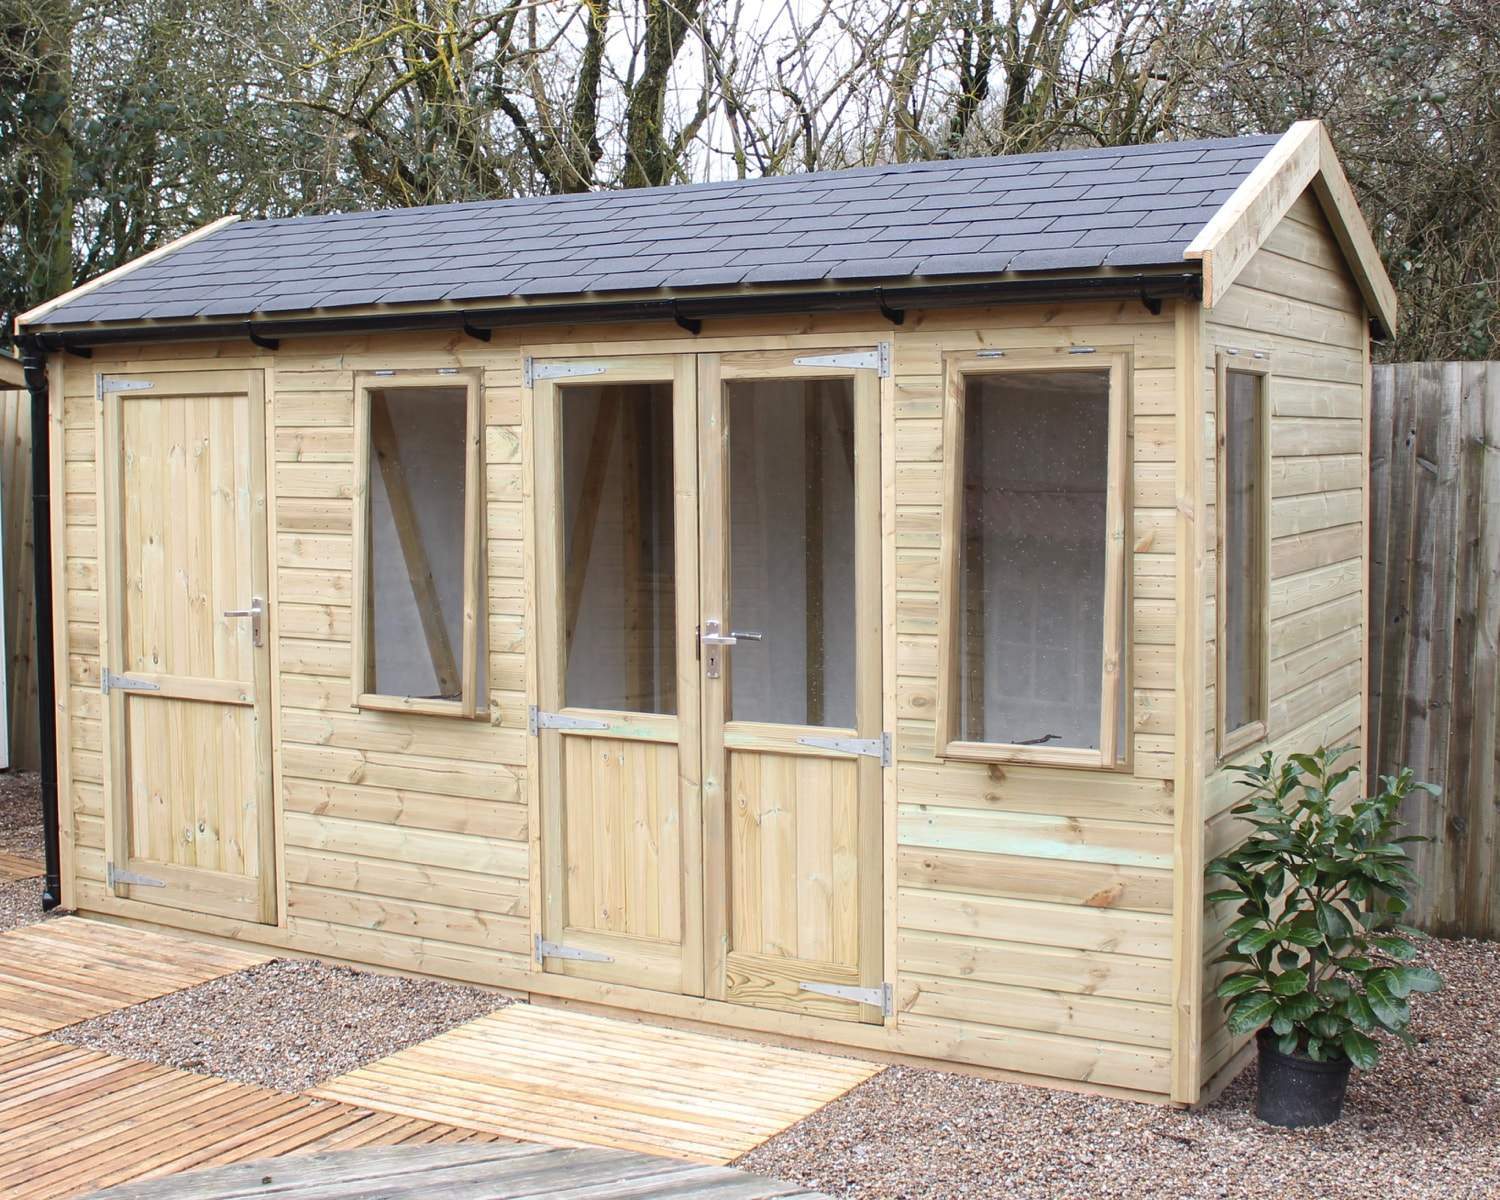 What's the difference between a cheap shed and an Ace Shed?